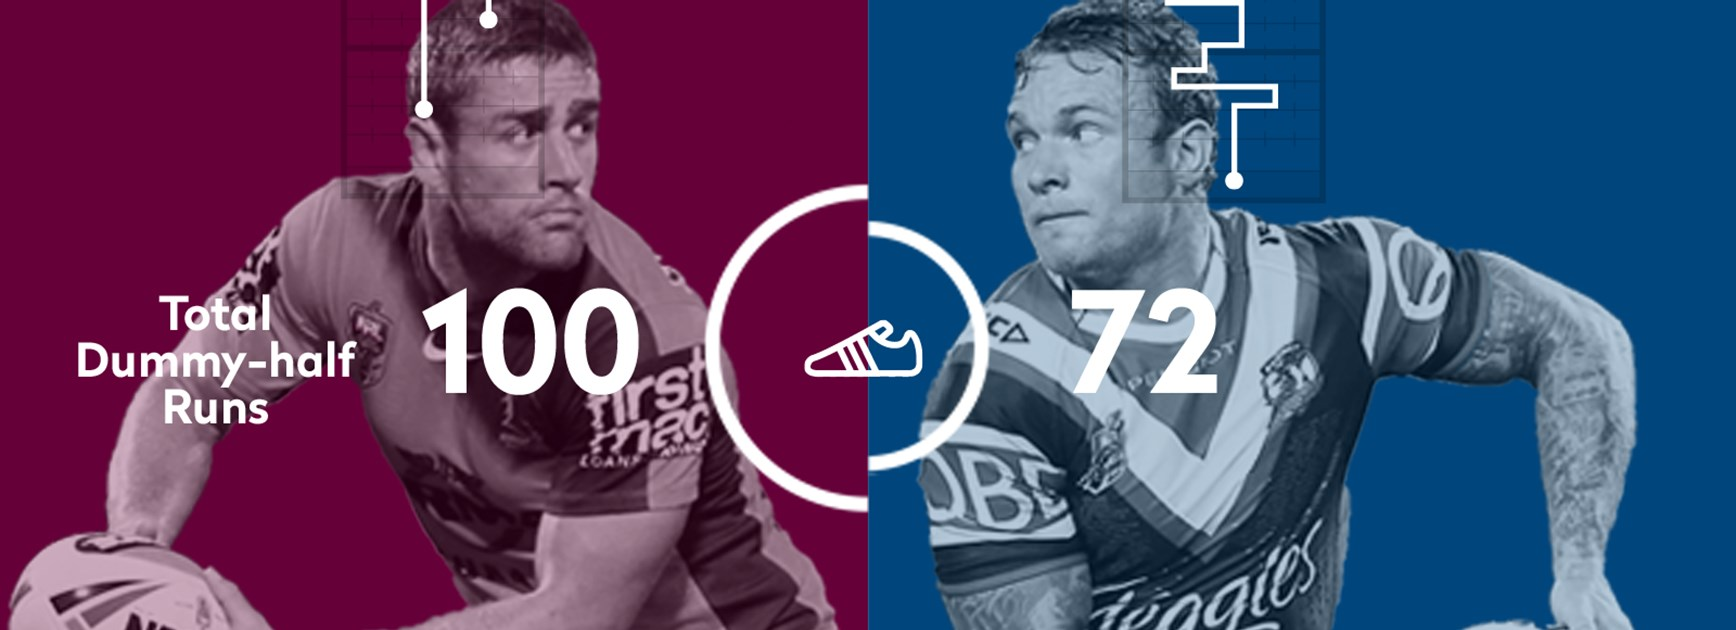 Brisbane hooker Andrew McCullough and Roosters rake Jake Friend are two of the best No.9s in the NRL - who will have the edge on Friday night?